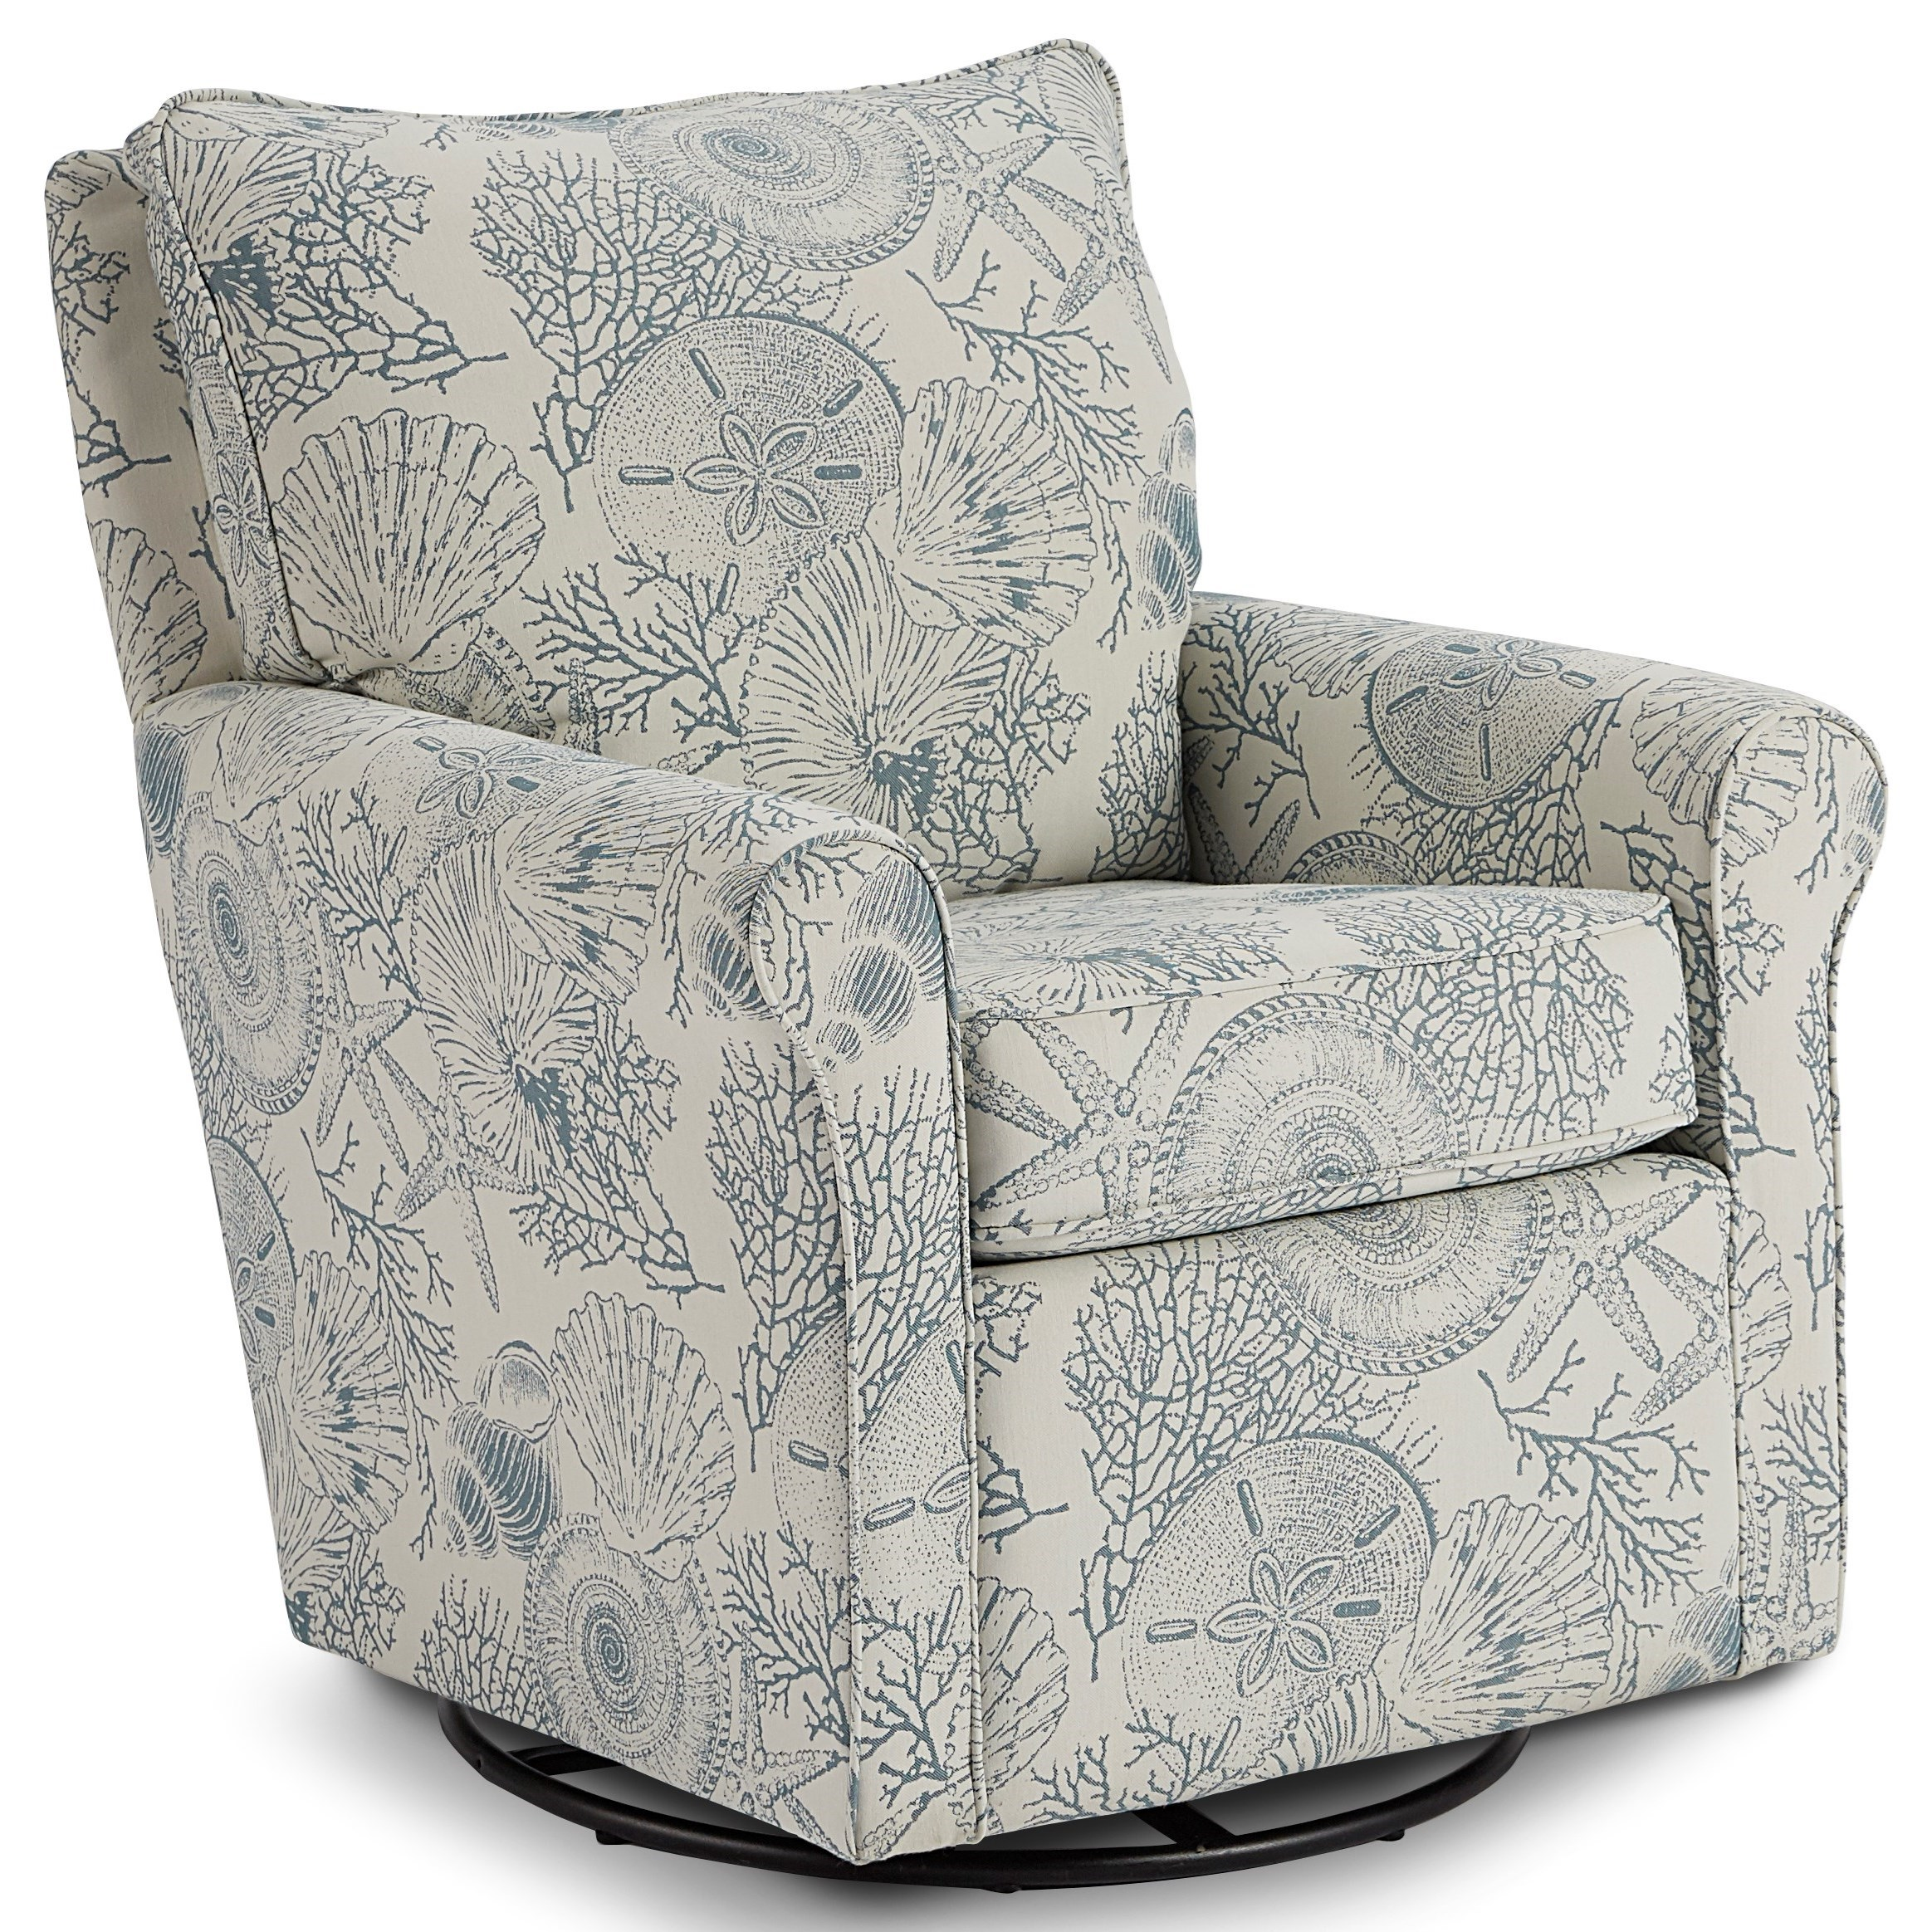 Kacey Swivel Glider Chair by Best Home Furnishings at Baer's Furniture